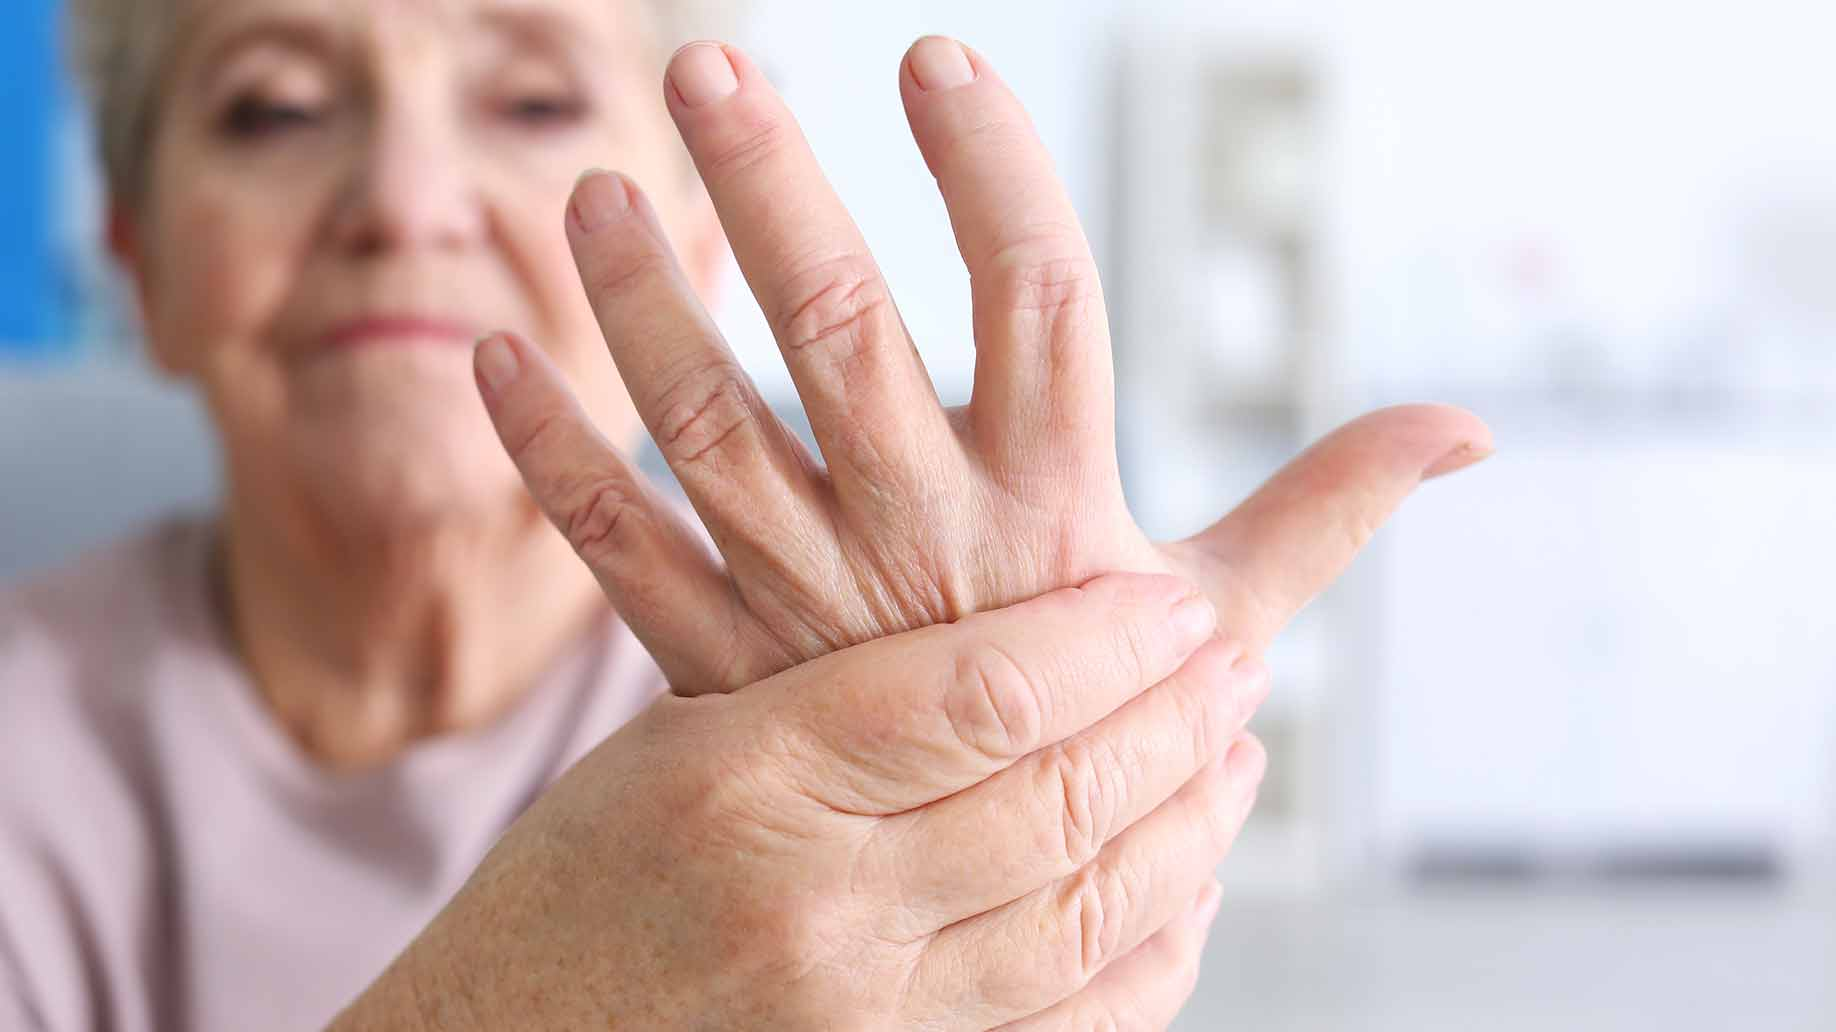 arthritis natural remedies elderly seniors wrist hand joint pain